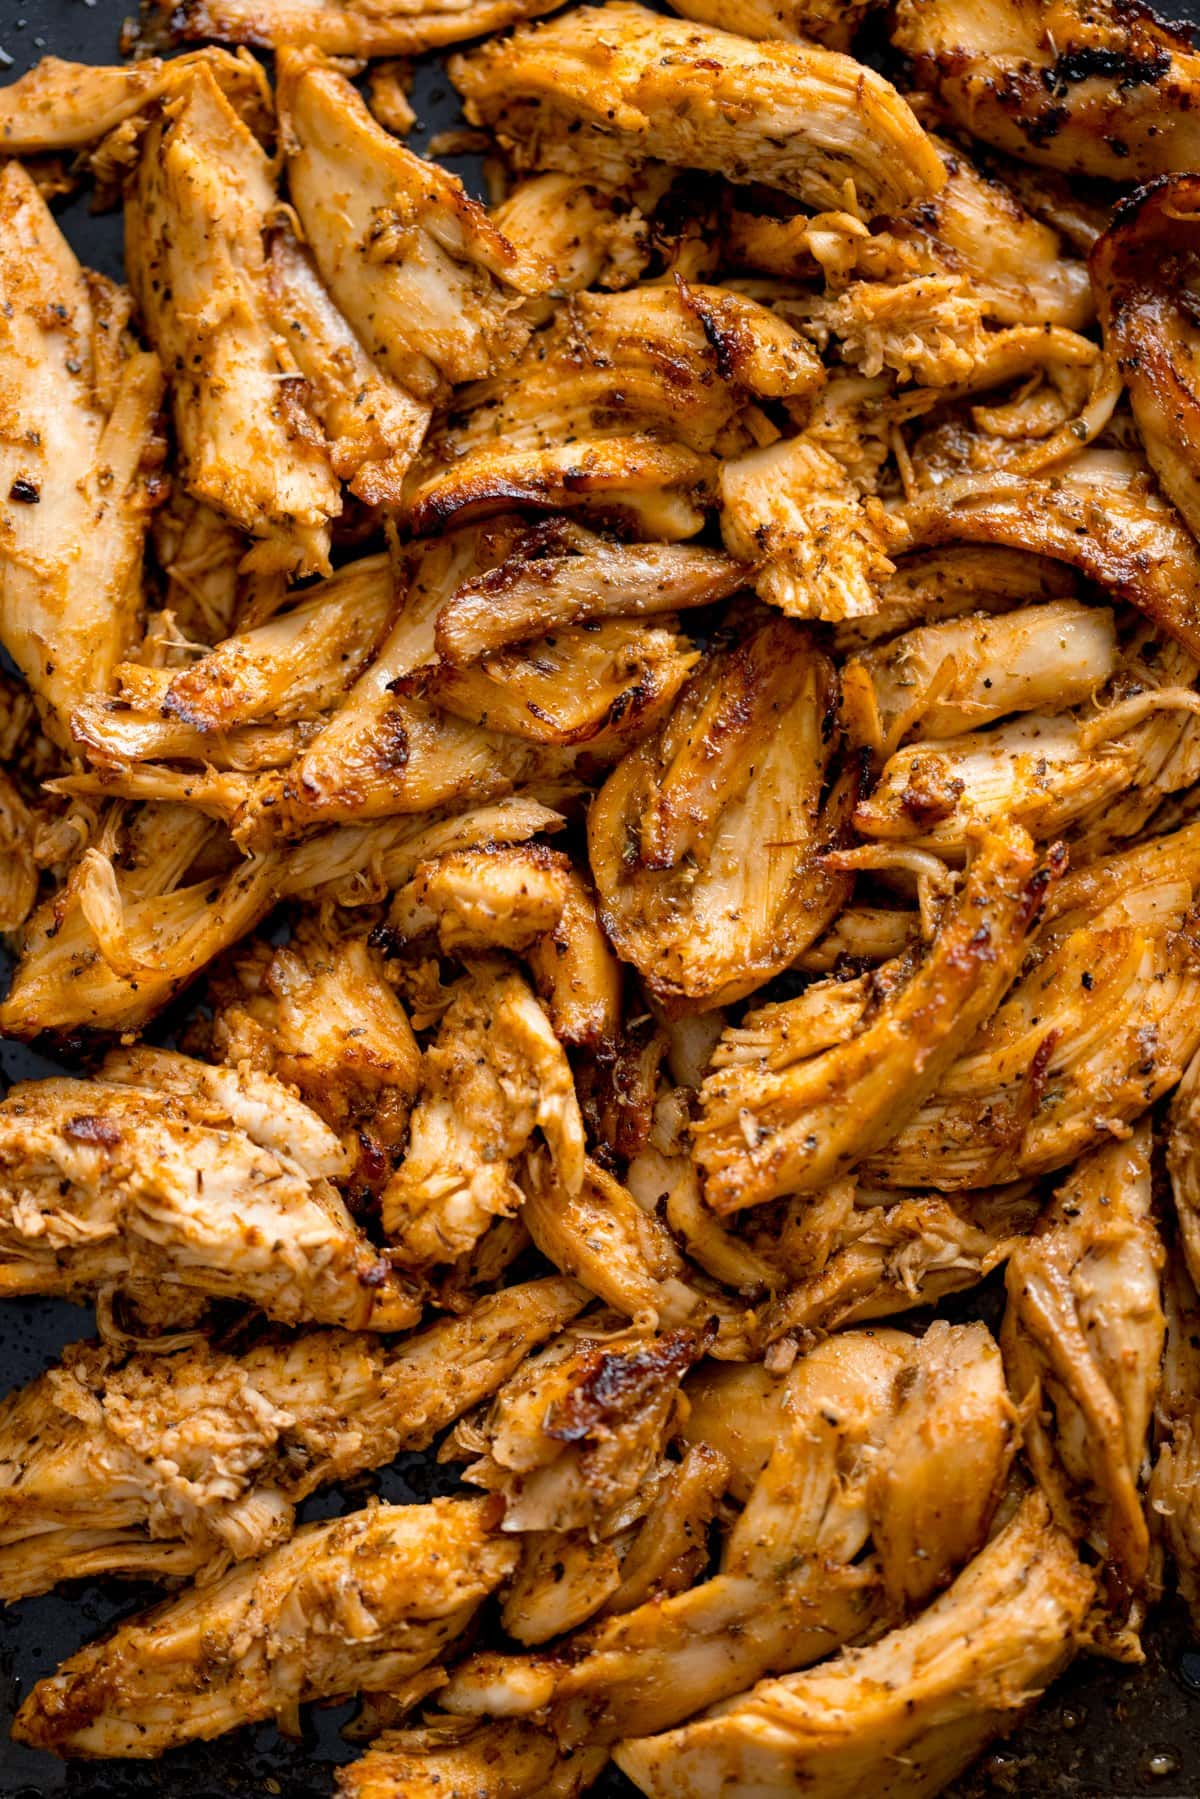 Overhead shot of shredded, spiced, grilled chicken - ready for making chicken gyros.